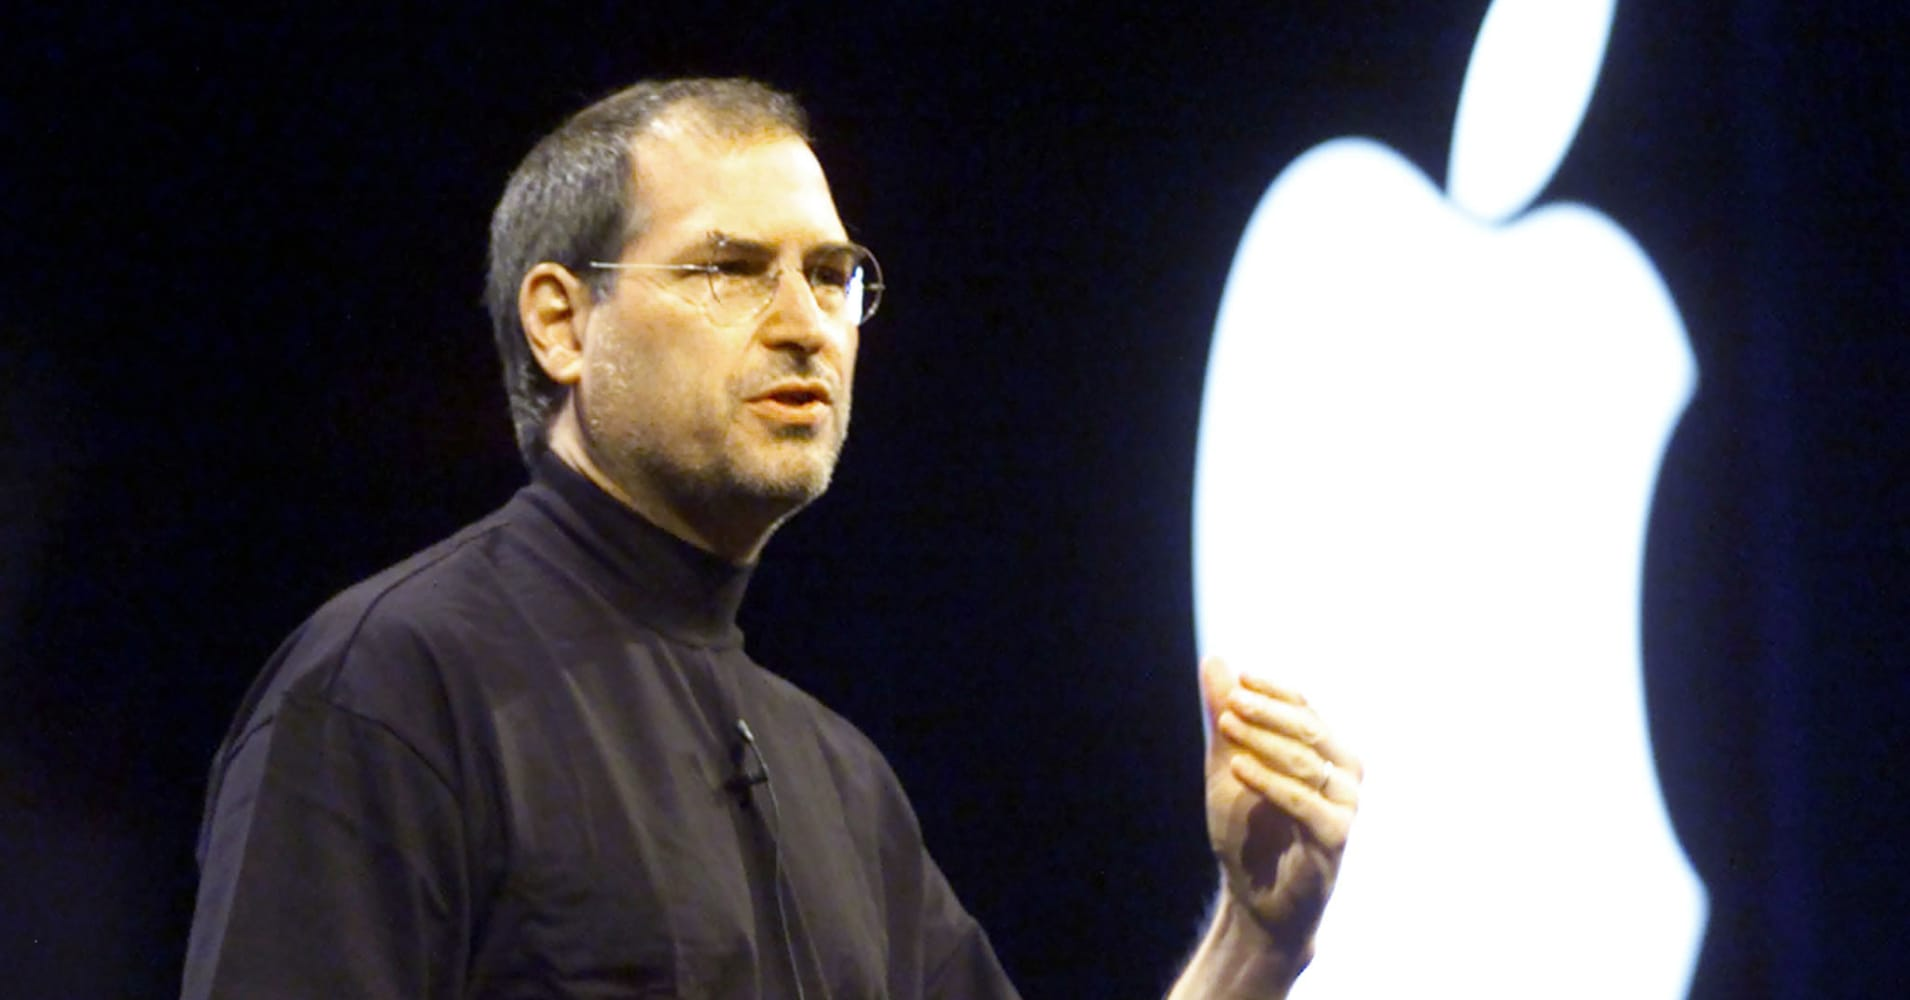 Apple CEO Steve Jobs gestures during his keynote address at the Macworld Conference and Expo at the Moscone Convention Center in San Francisco January 9, 2001.